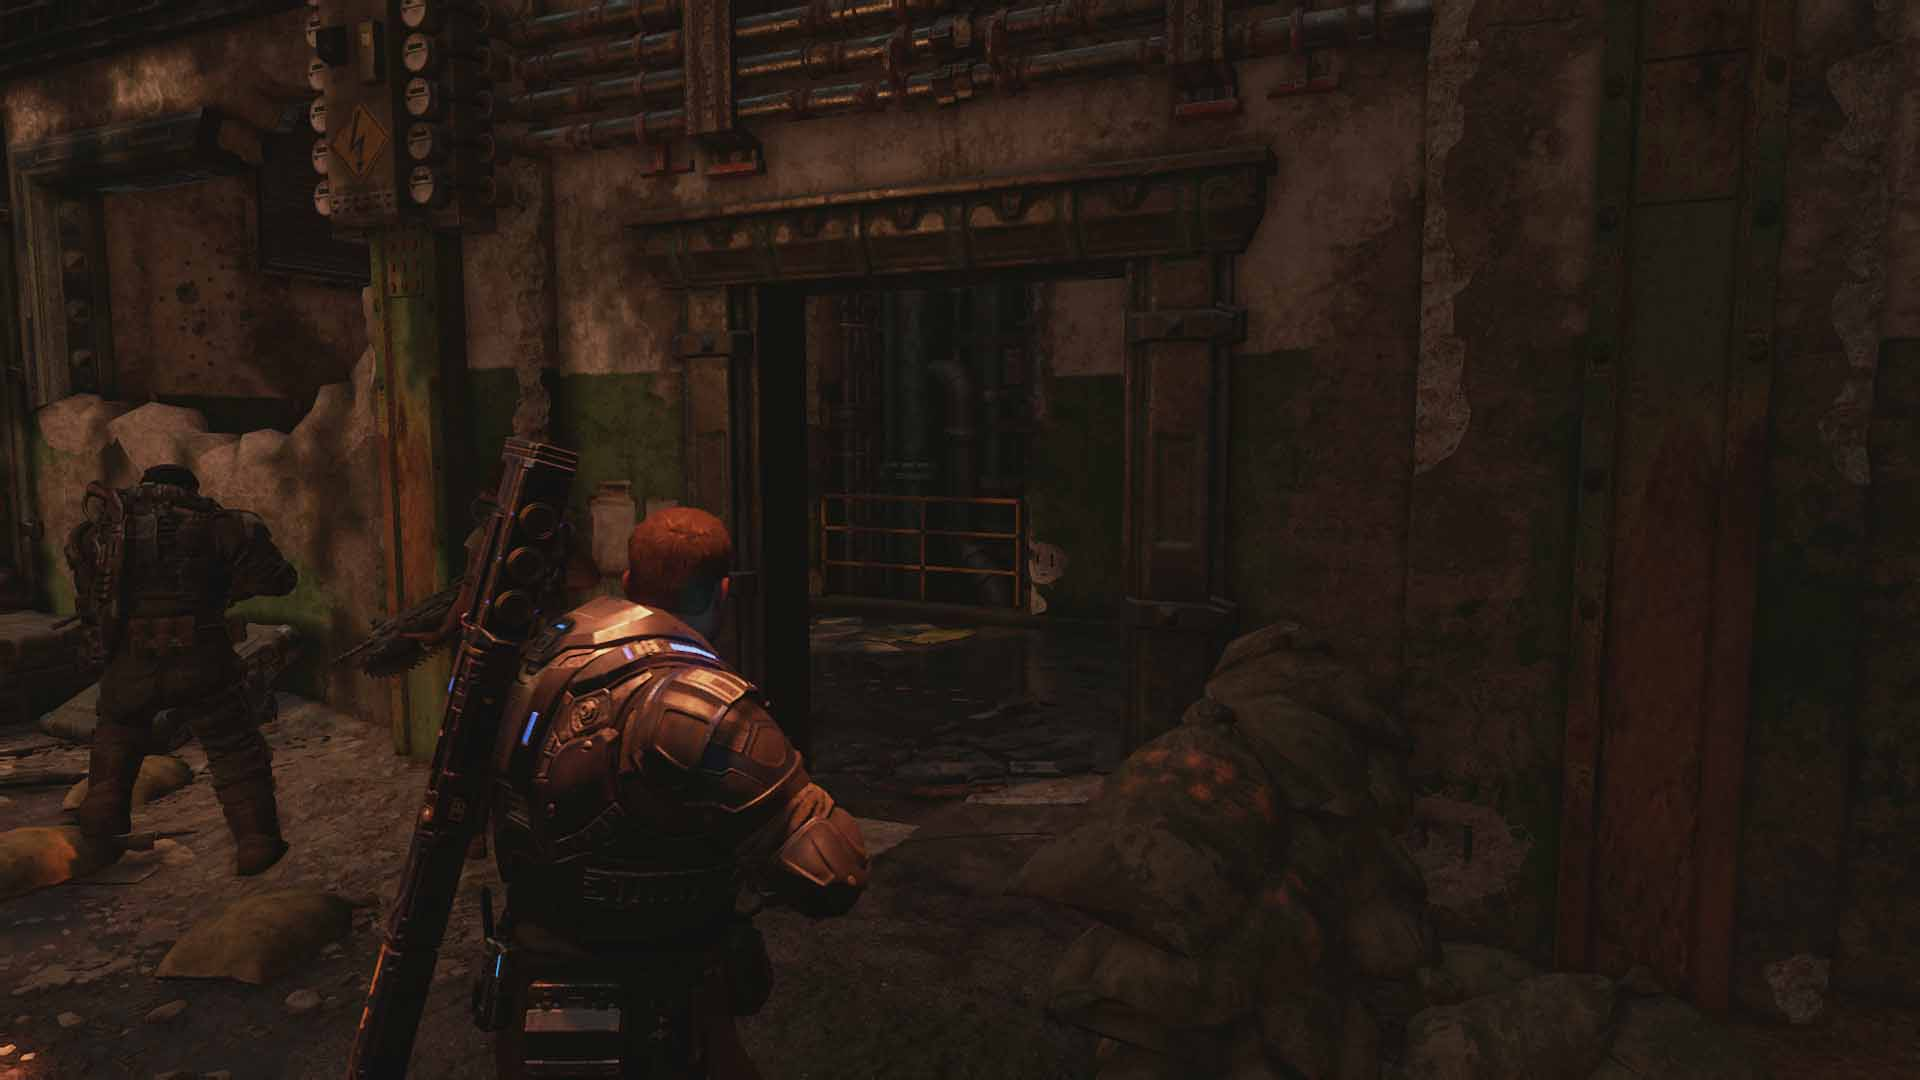 gears of war 4 collectibles guide  act 4